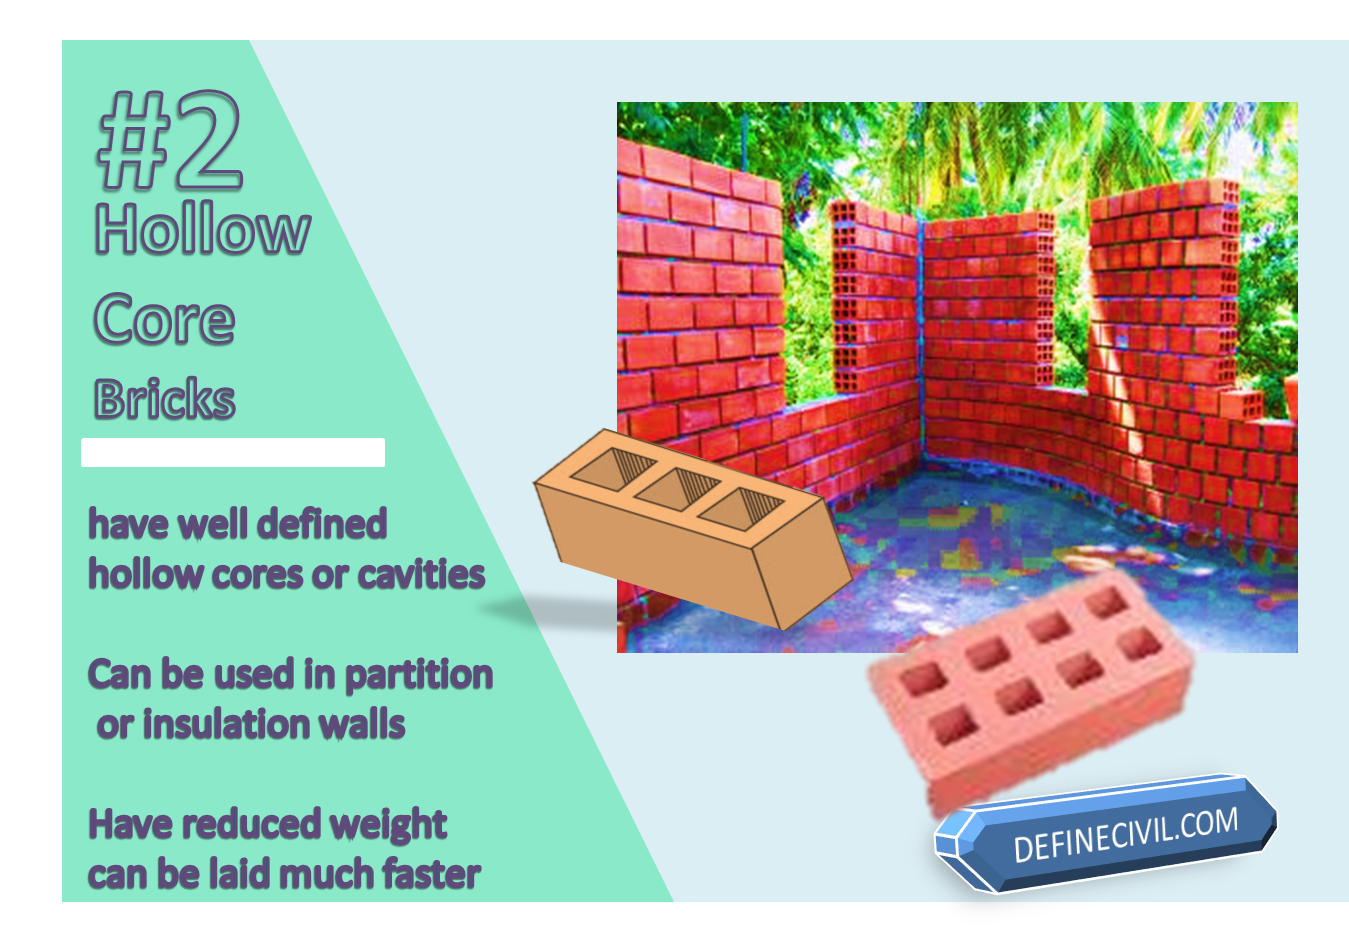 Hollow Core Bricks